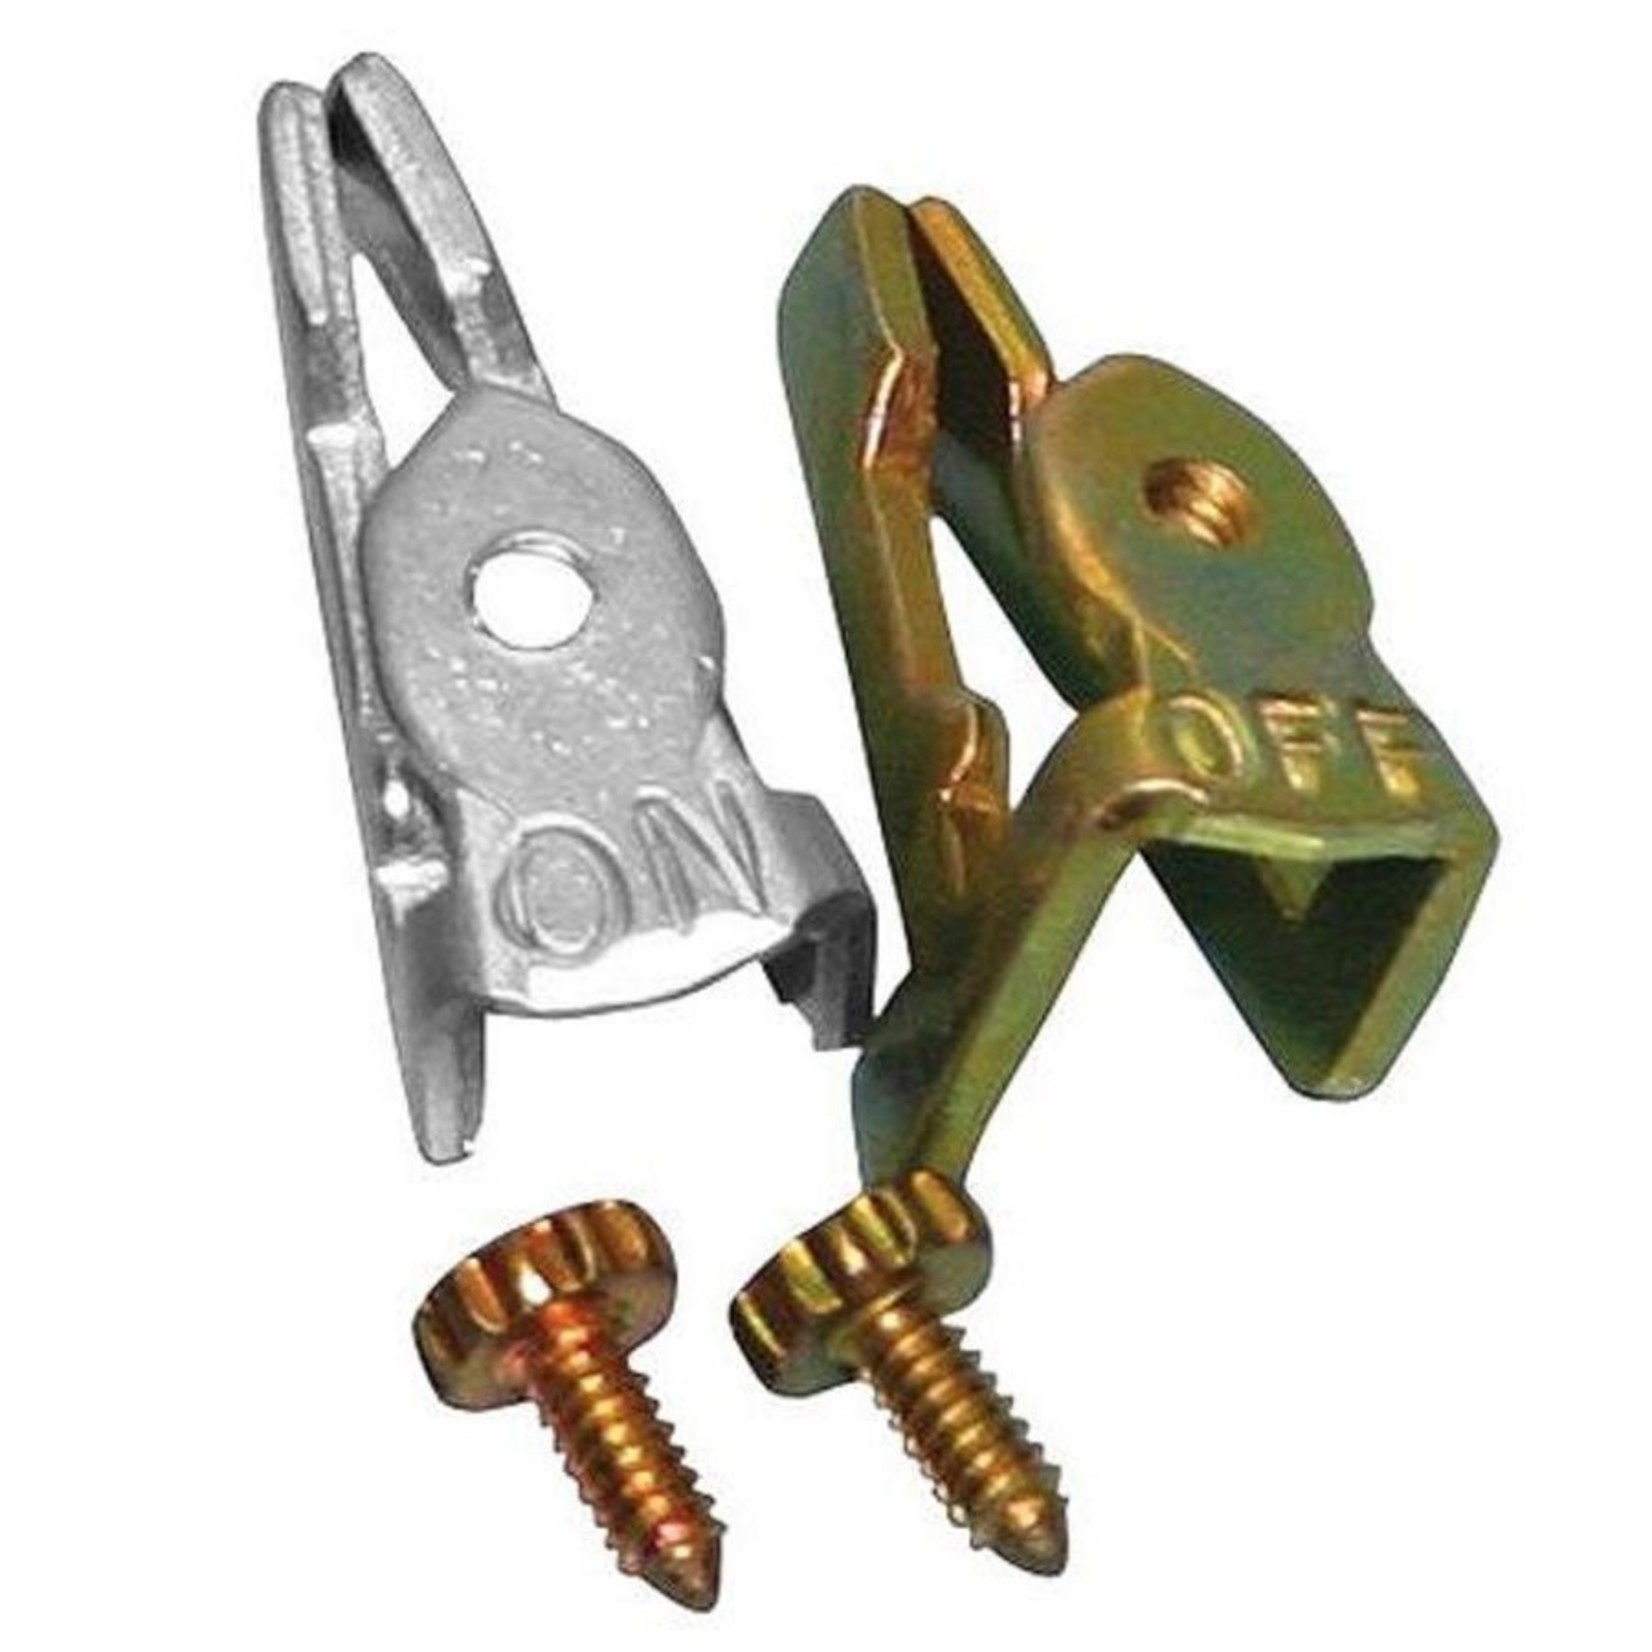 Intermatic ON / OFF PIN FOR T-101, T-103 AND T-104